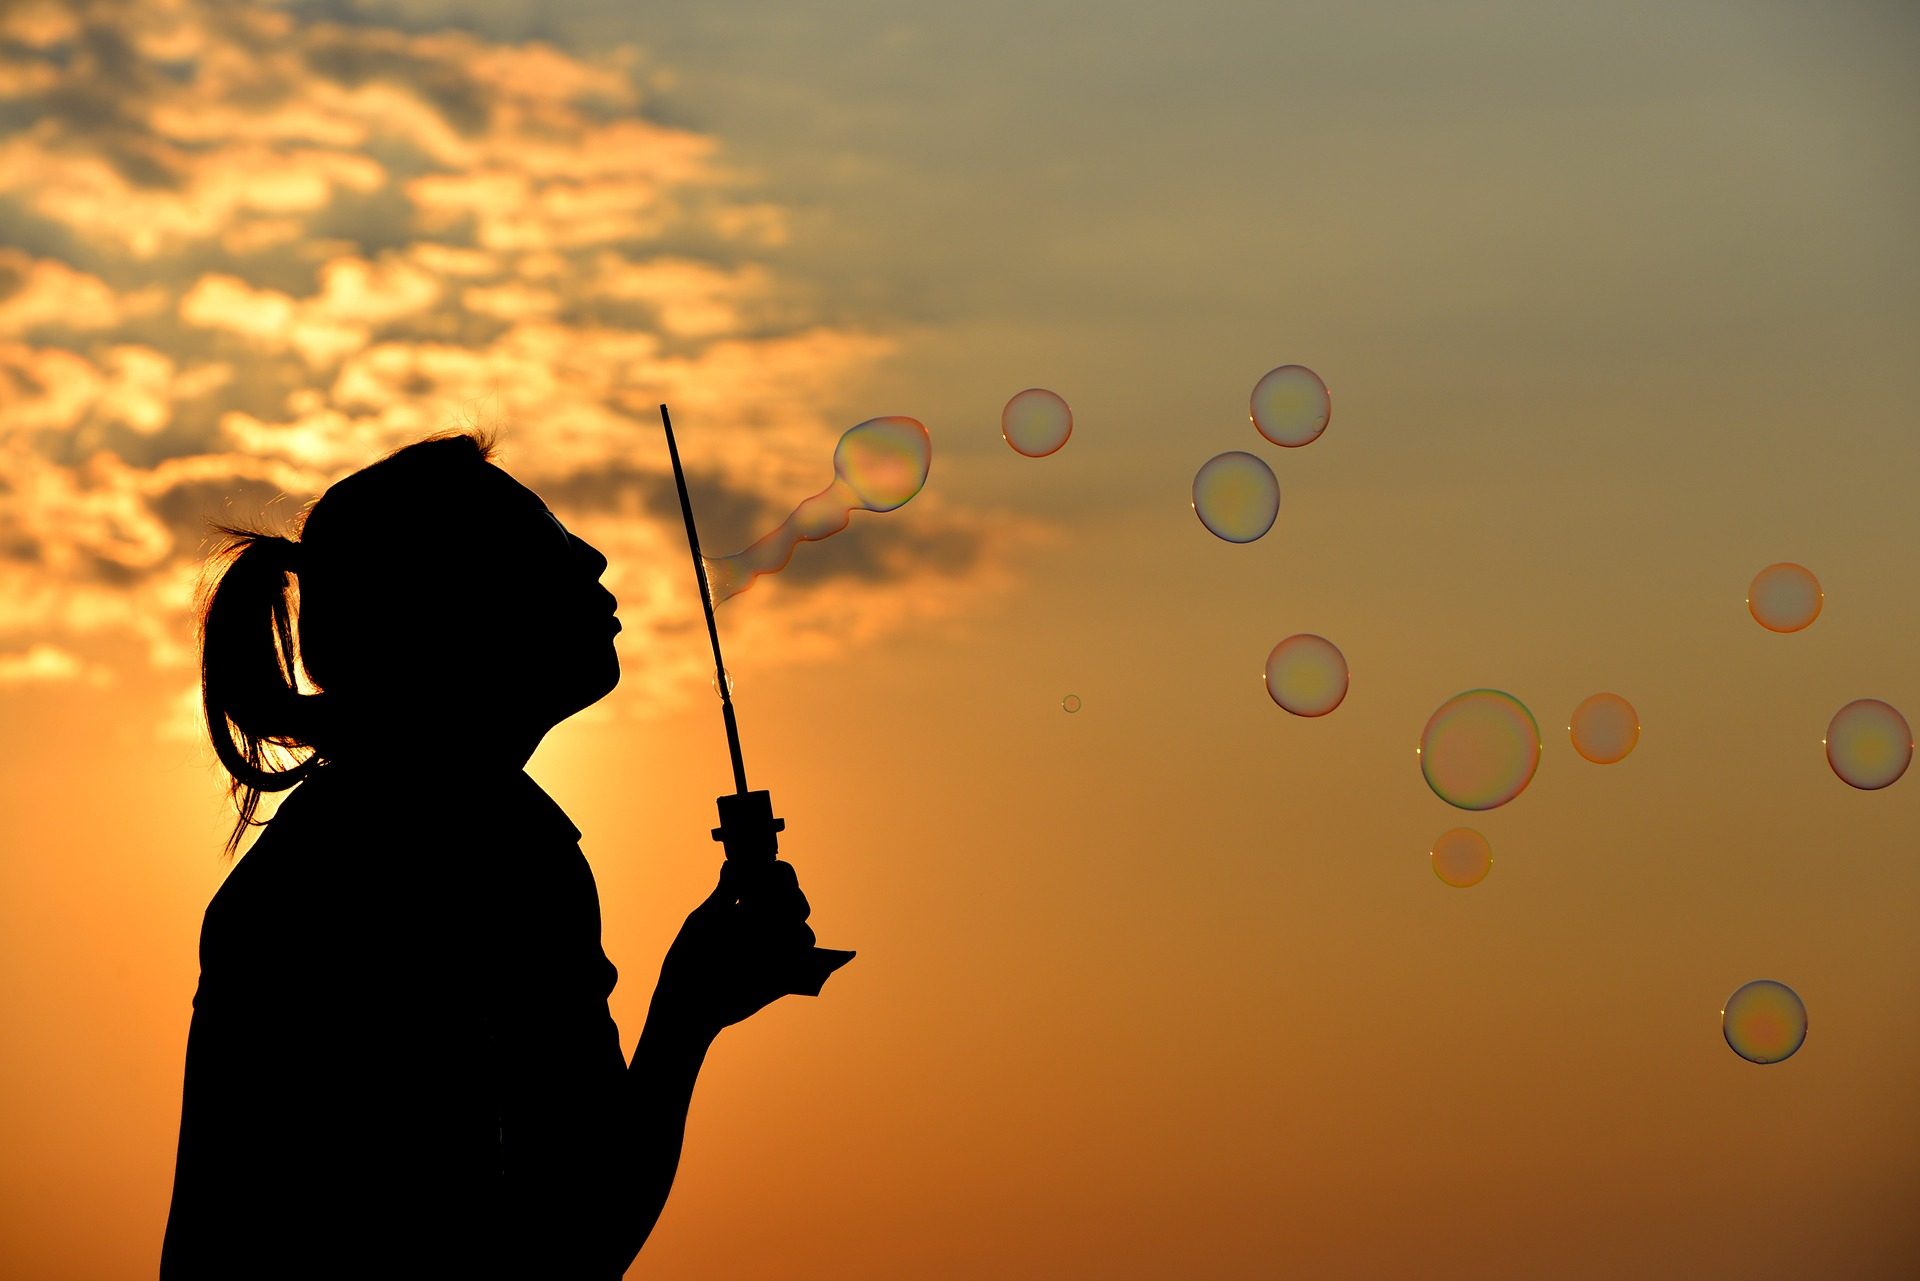 Silhouette of a woman blowing bubbles in front of sunset